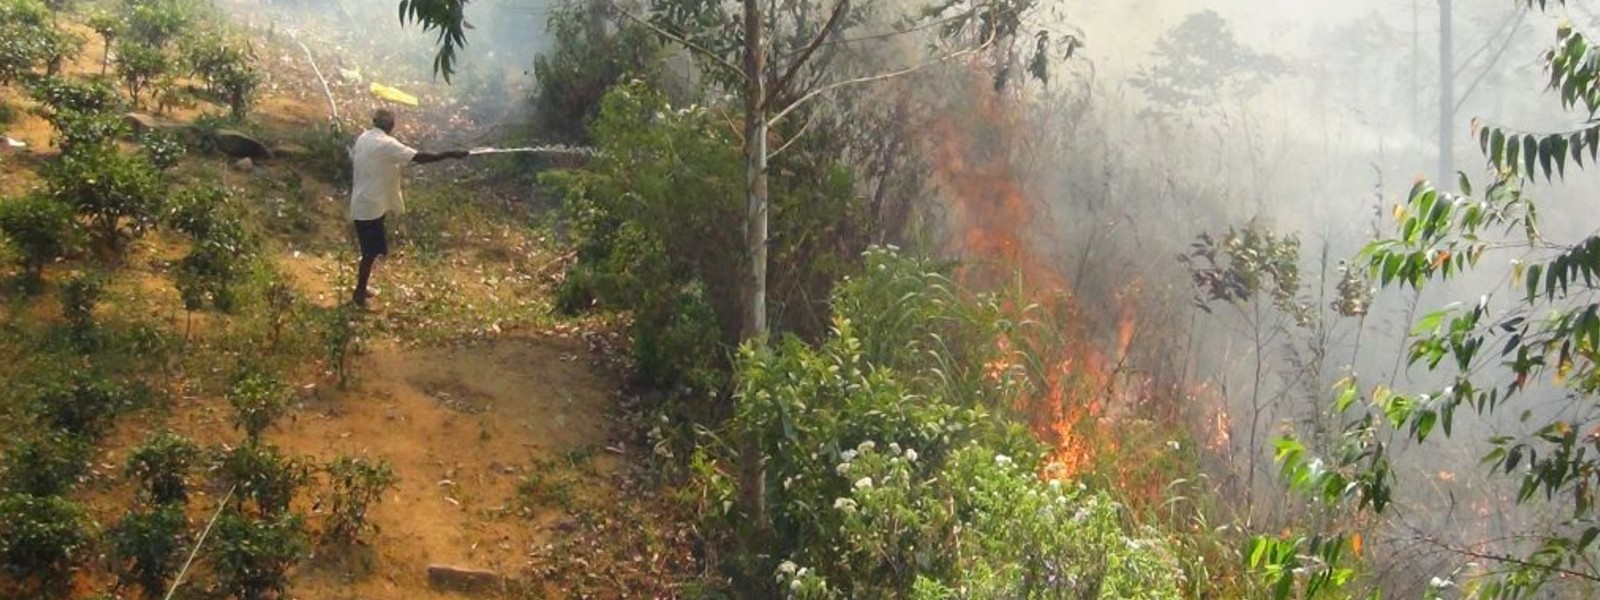 Forest fire destroys 25 acres of land in Hatton